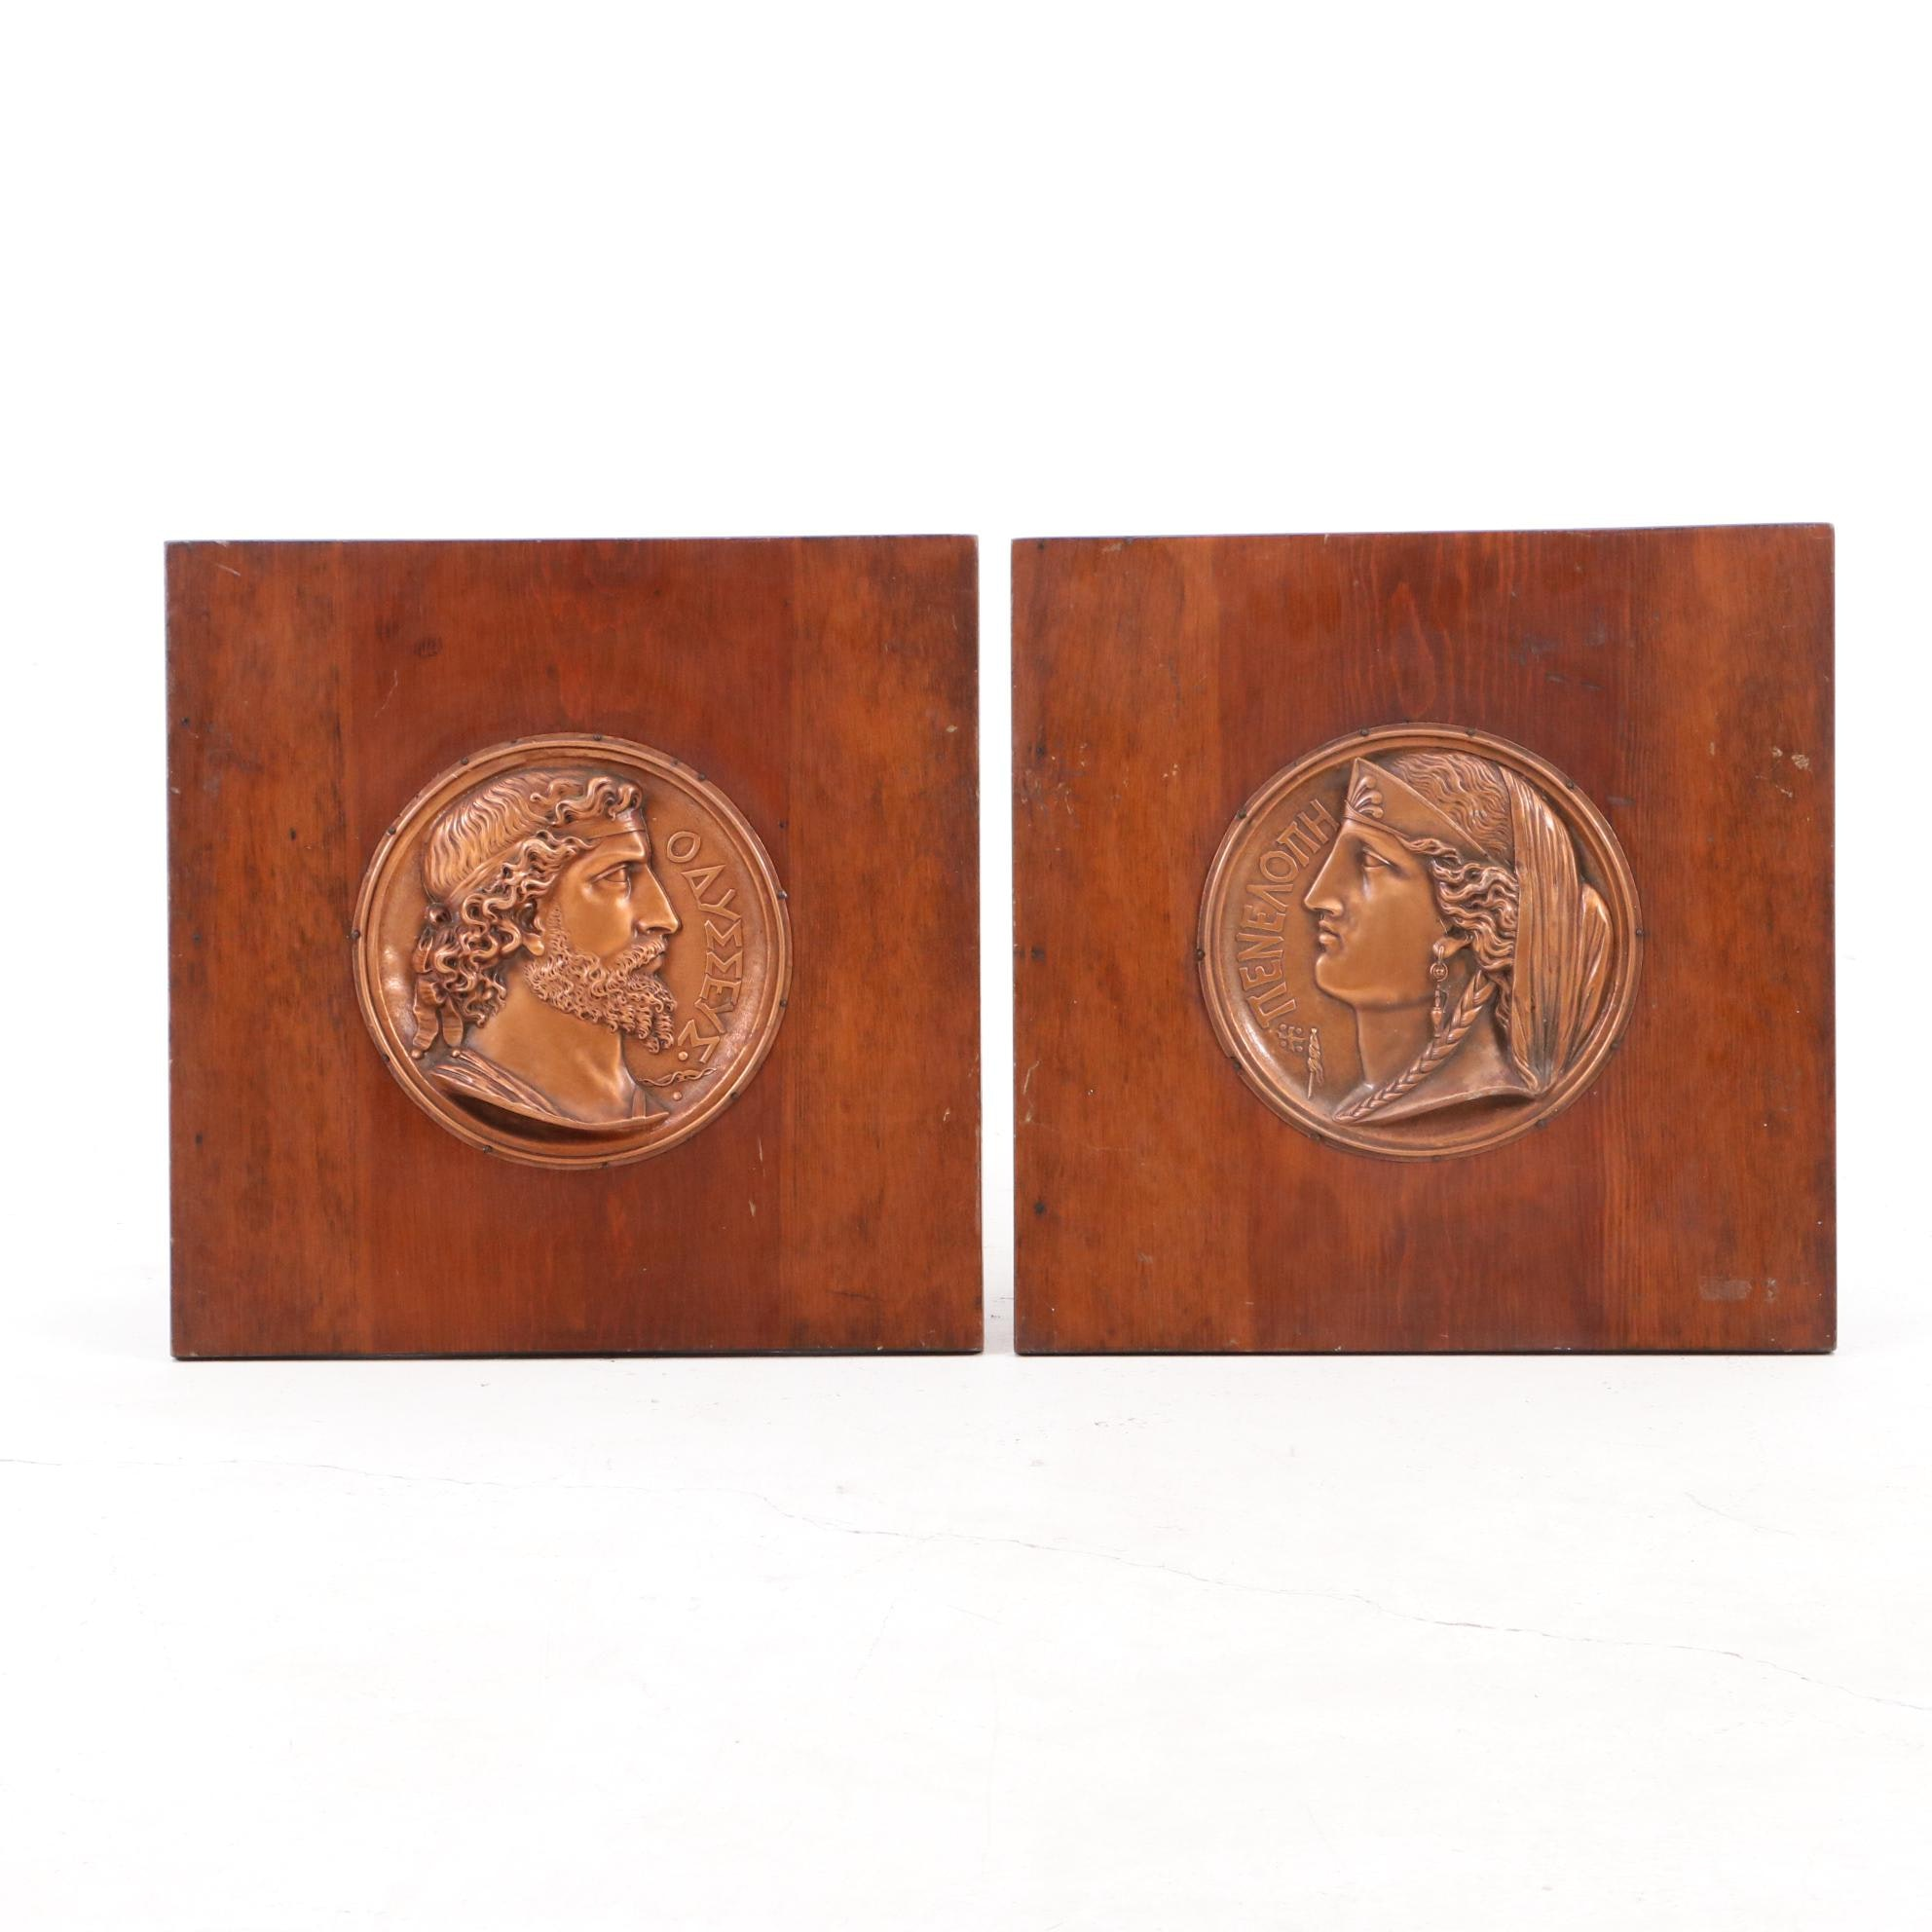 Framed Copper Relief Medallions of Ulysses and Penelope